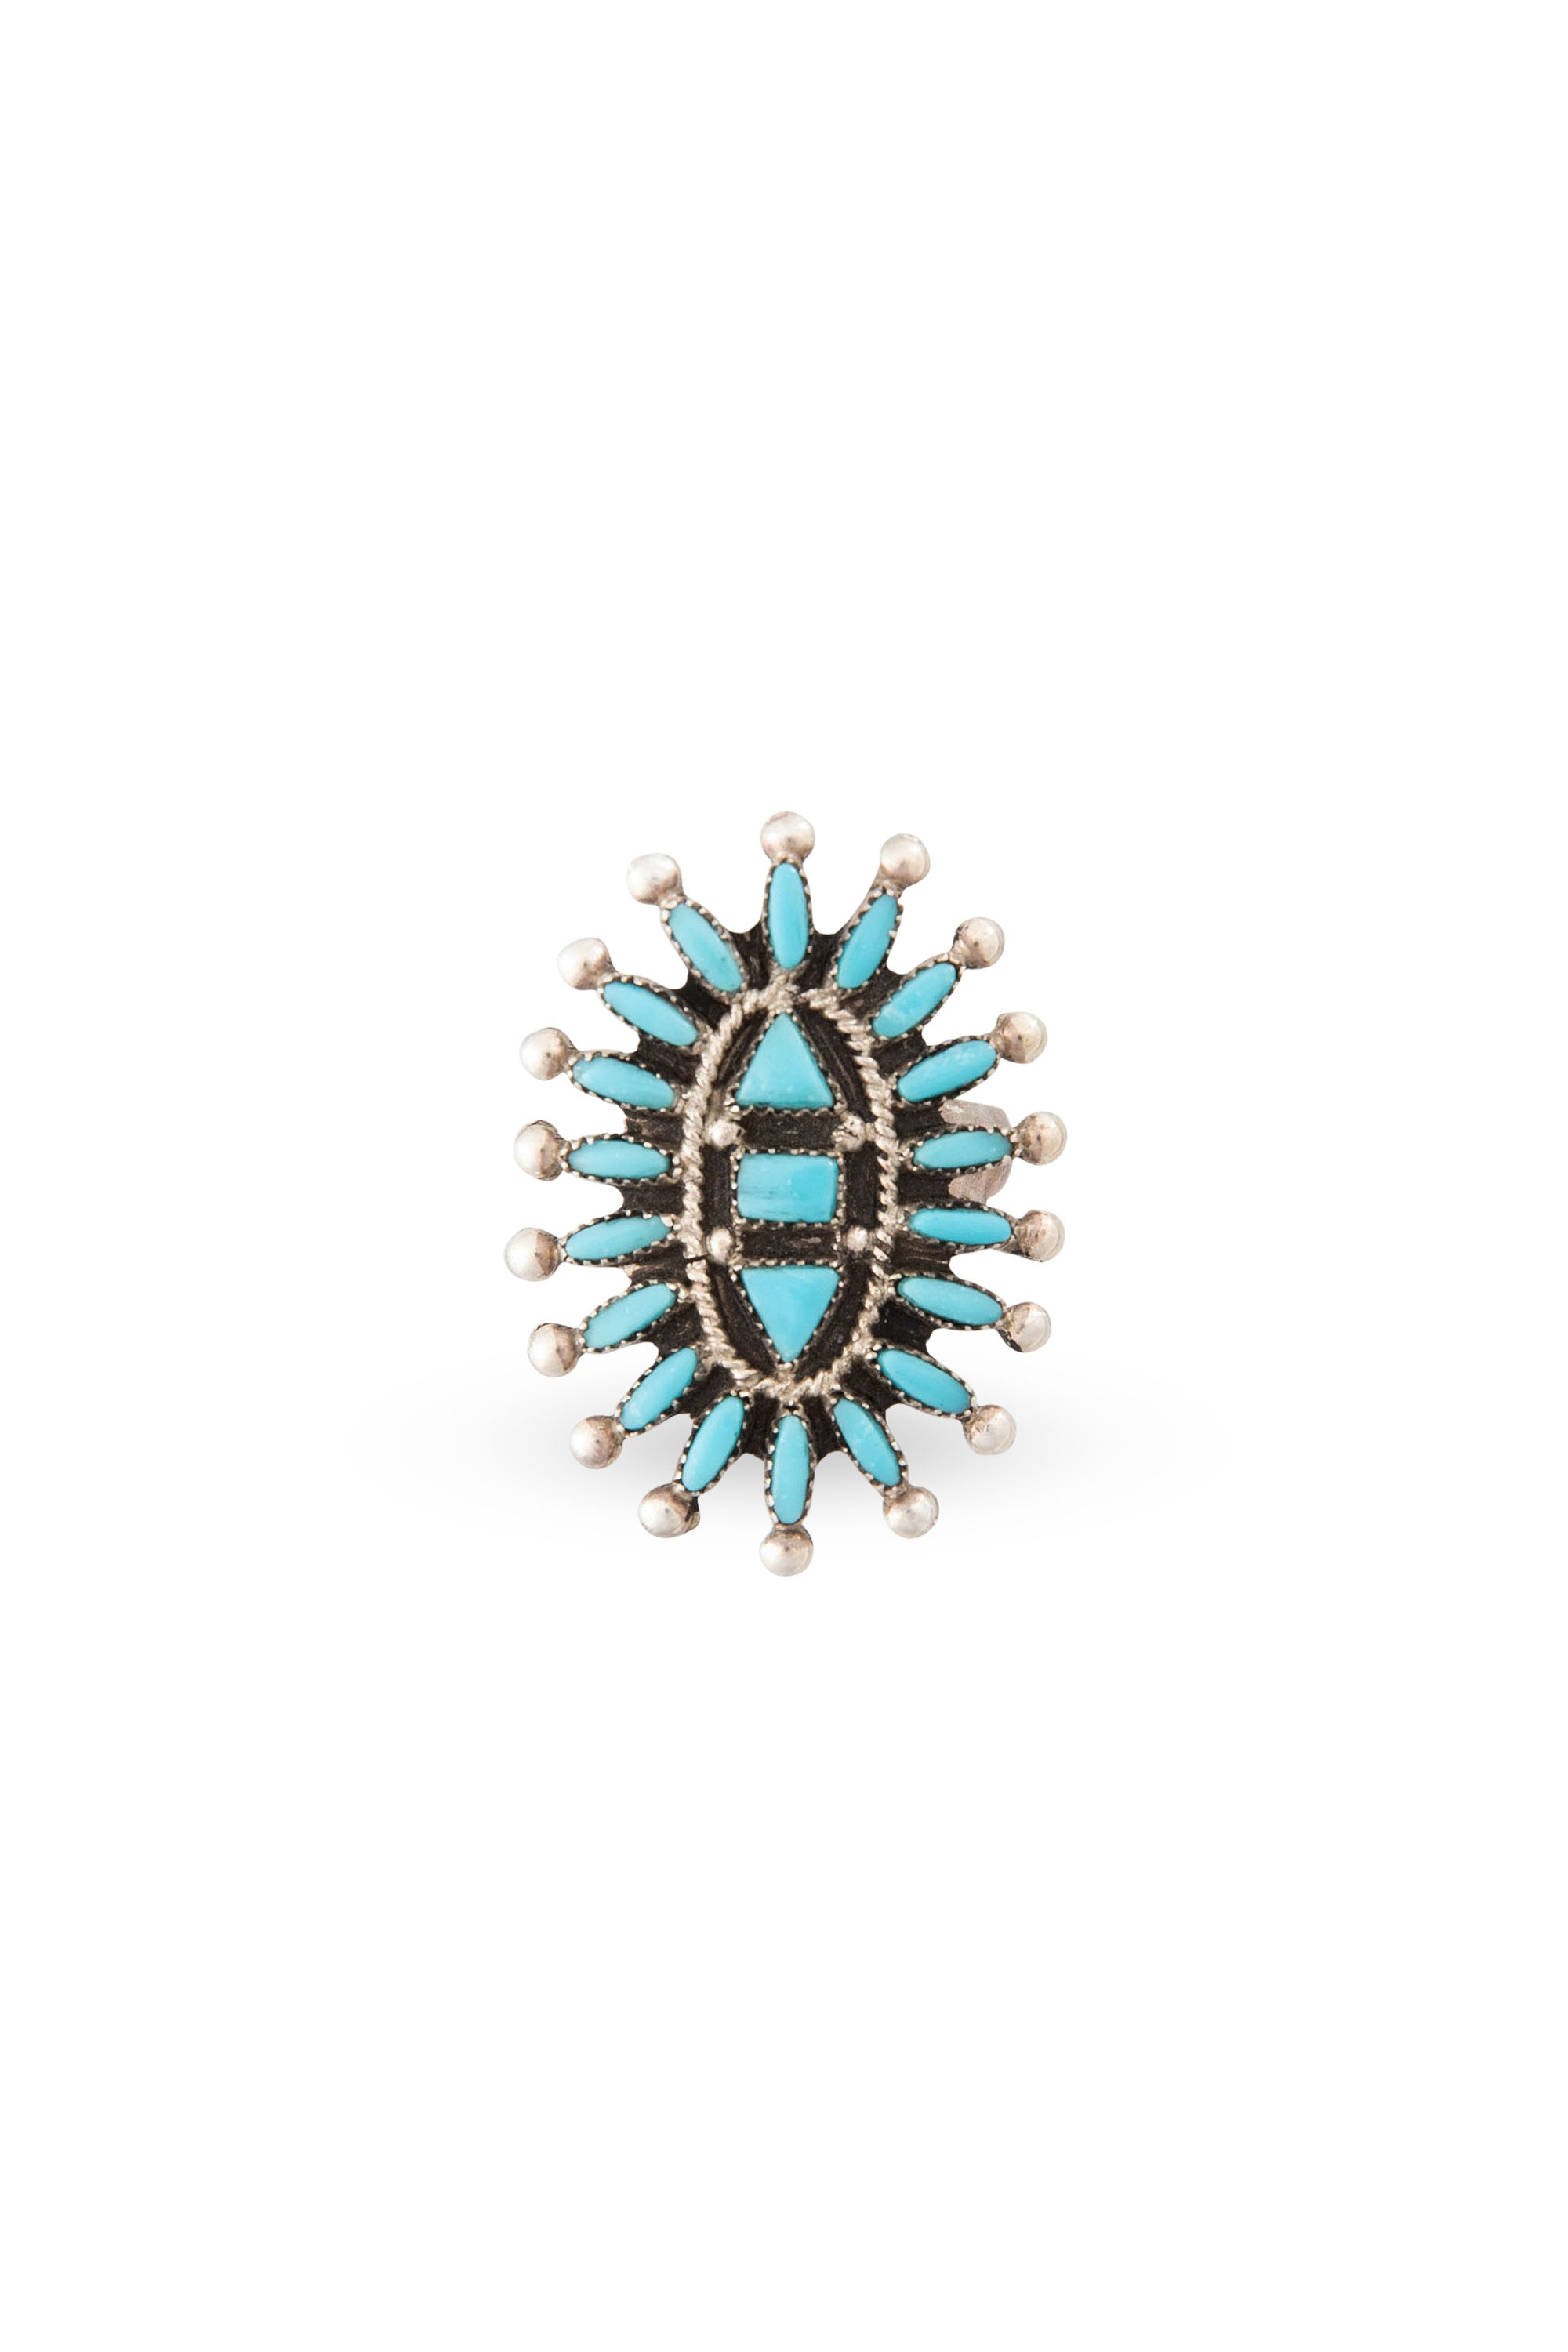 Ring, Cluster, Turquoise, Needlepoint, Evone Hustito, 430